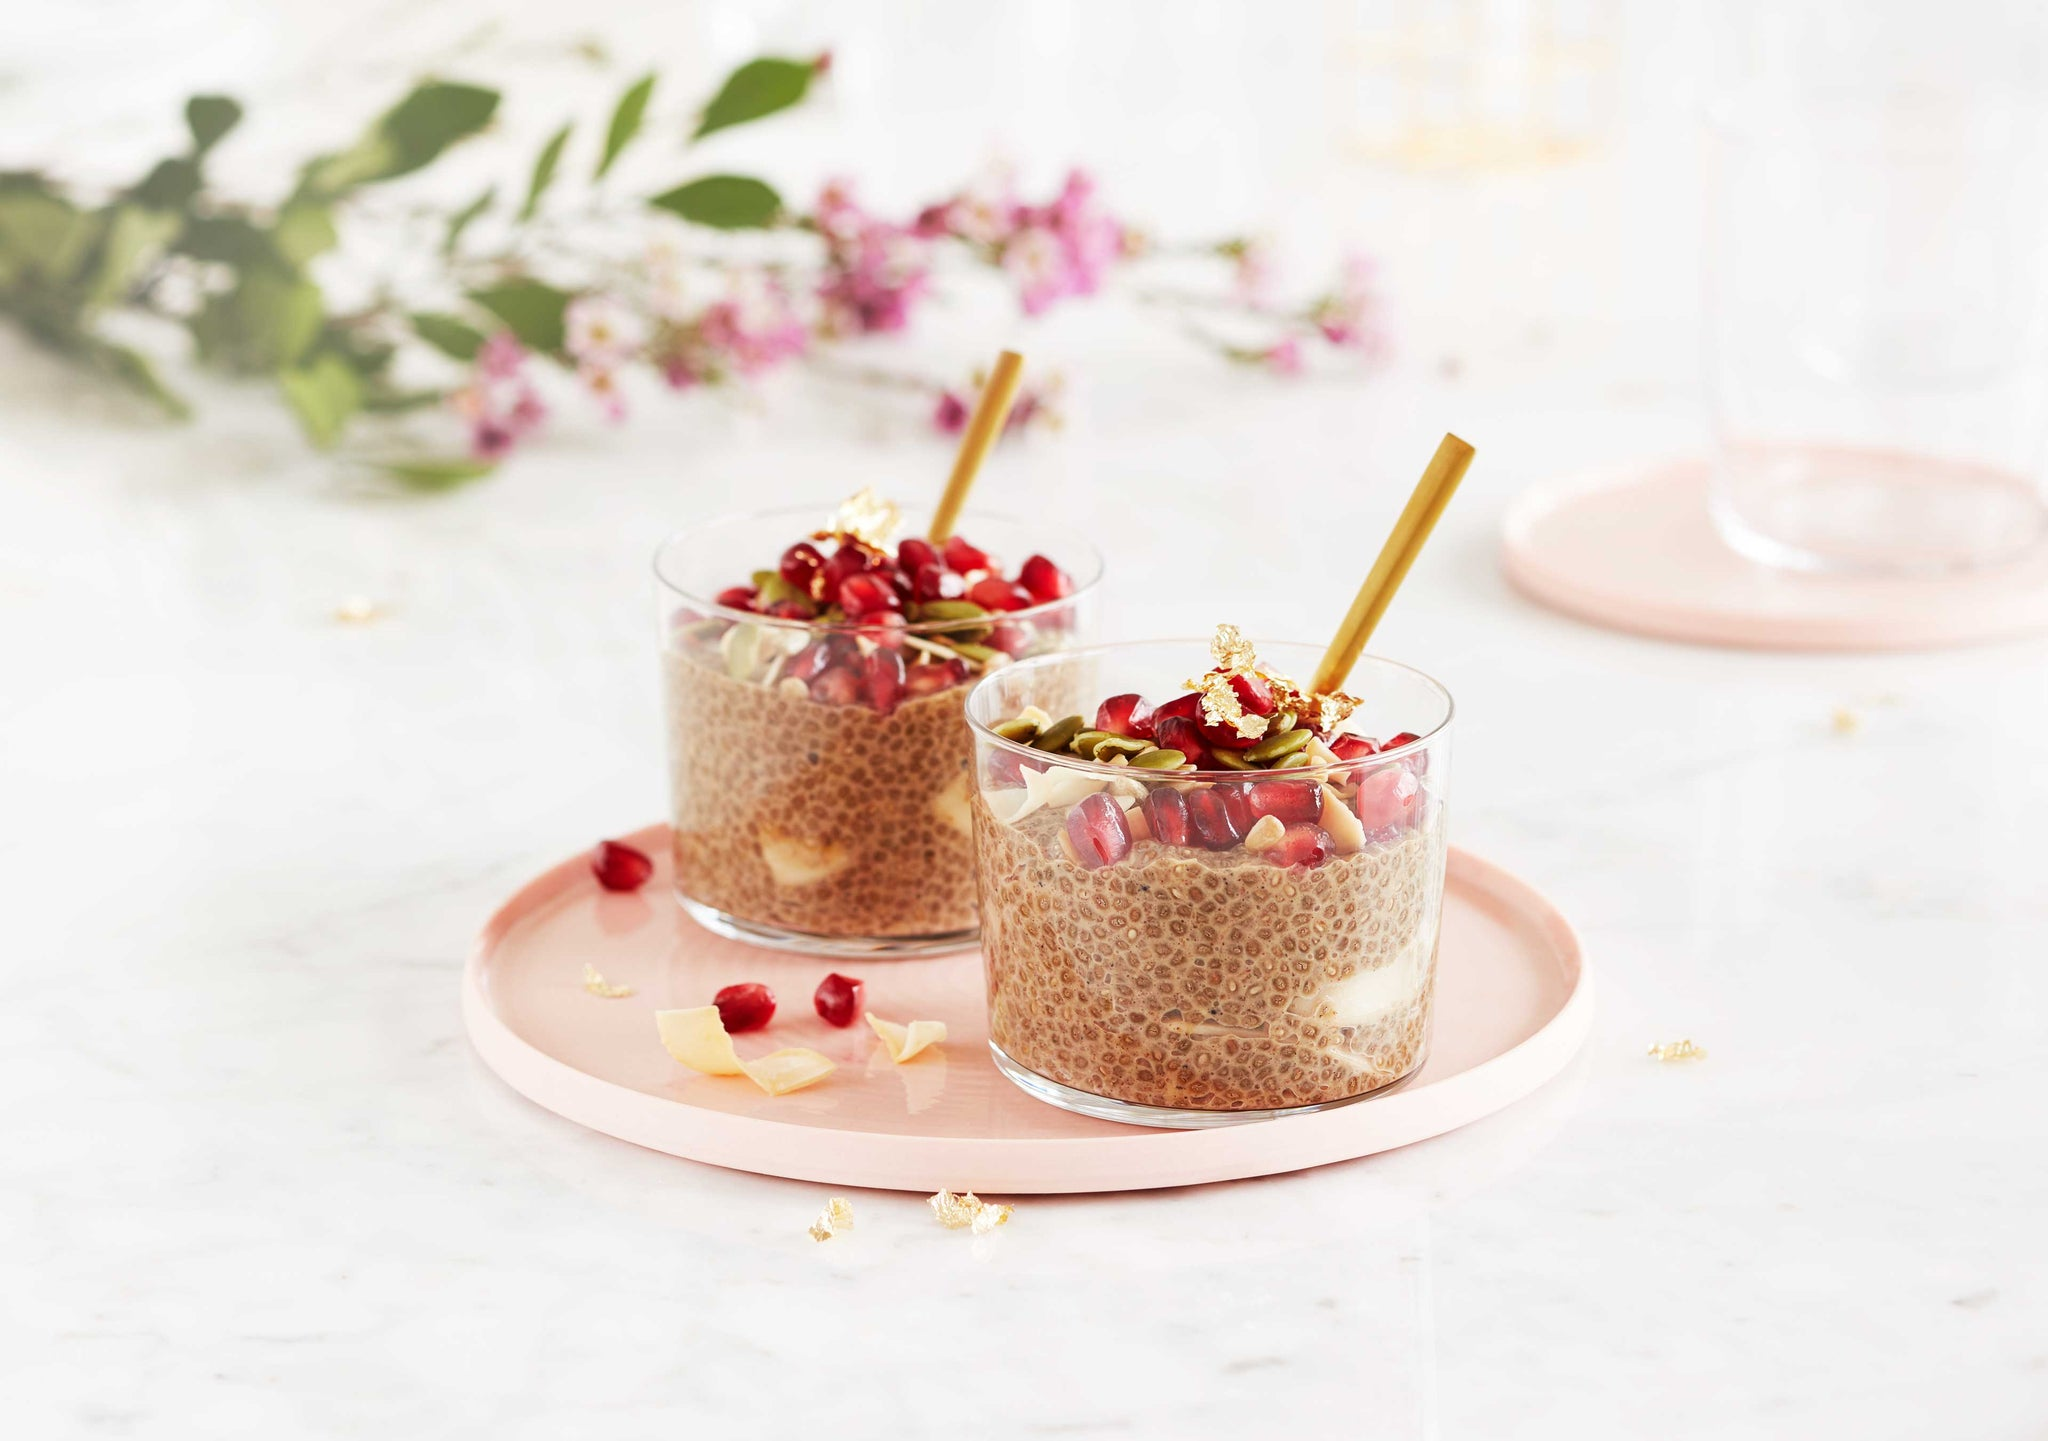 "Cocopom Chia Pudding <span class=""rightalign icon-Vegan""></span> <span class=""rightalign icon-DairyFree""></span>"